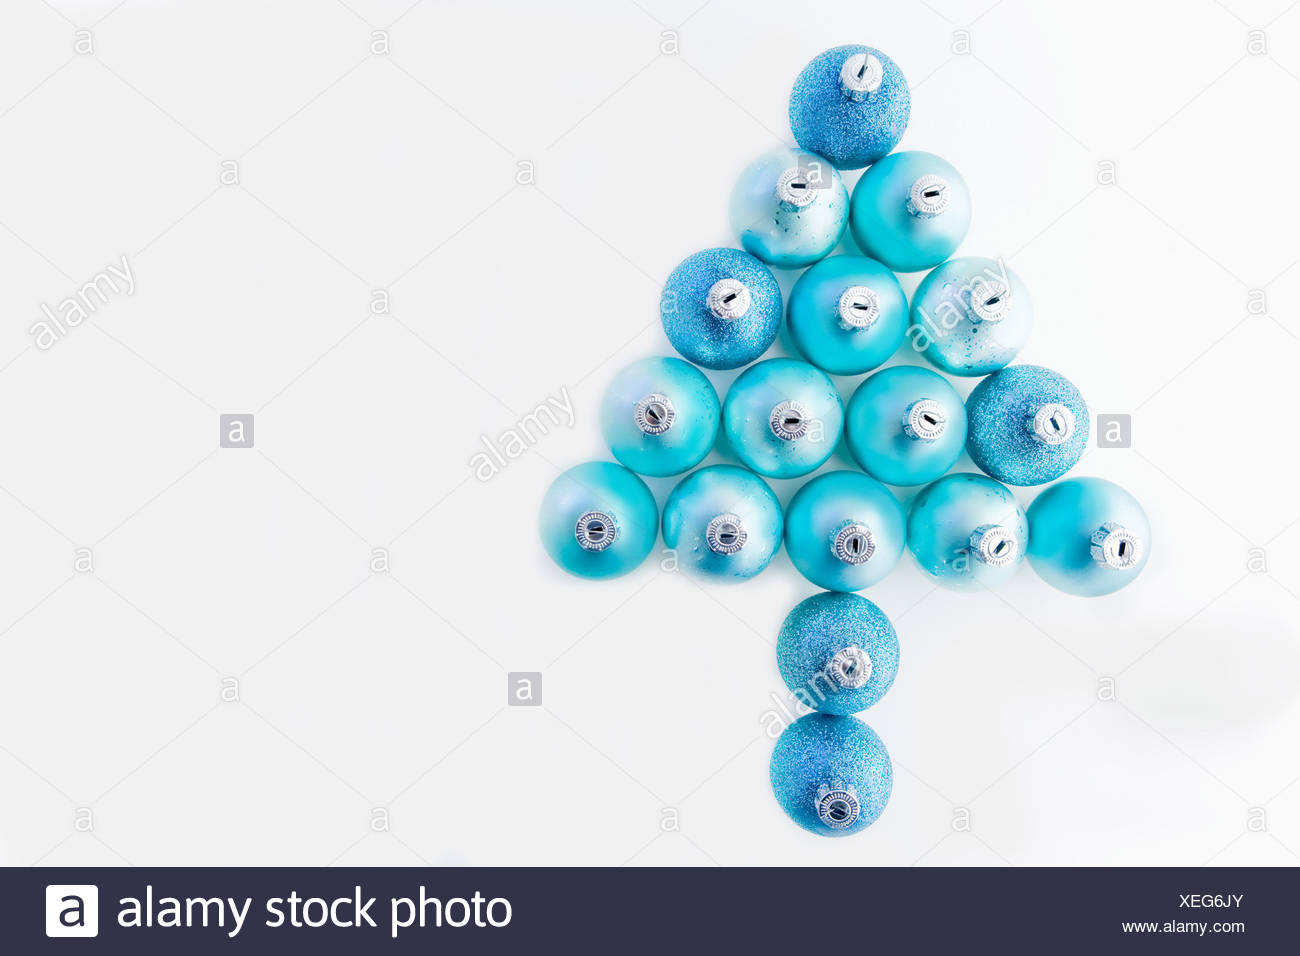 Christmas tree made of blue christmas baubles - Stock Image